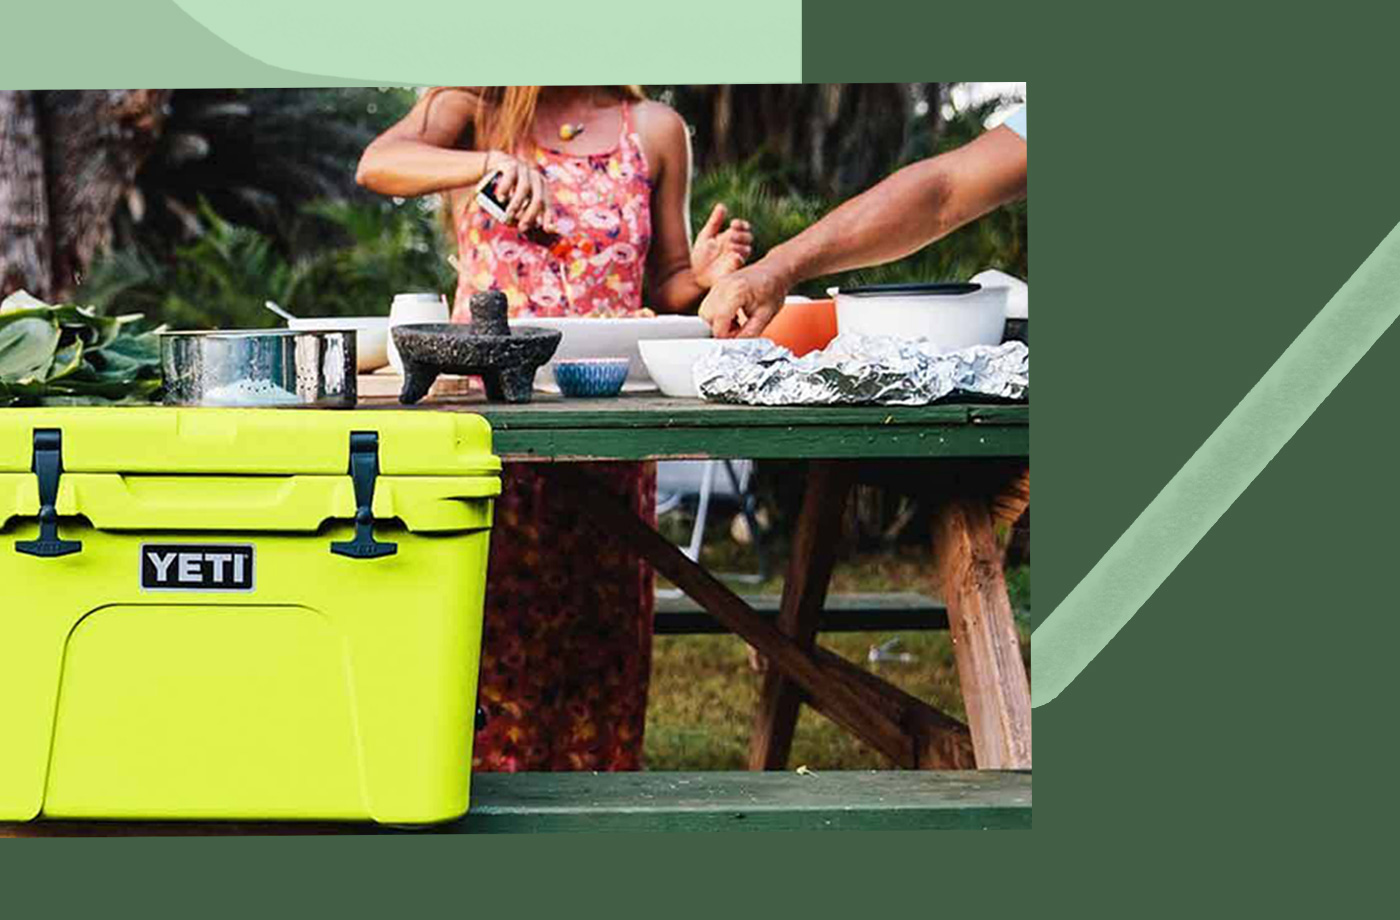 Thumbnail for The 6 Best Coolers to Level Up Your Park Picnic and Beach Hangout